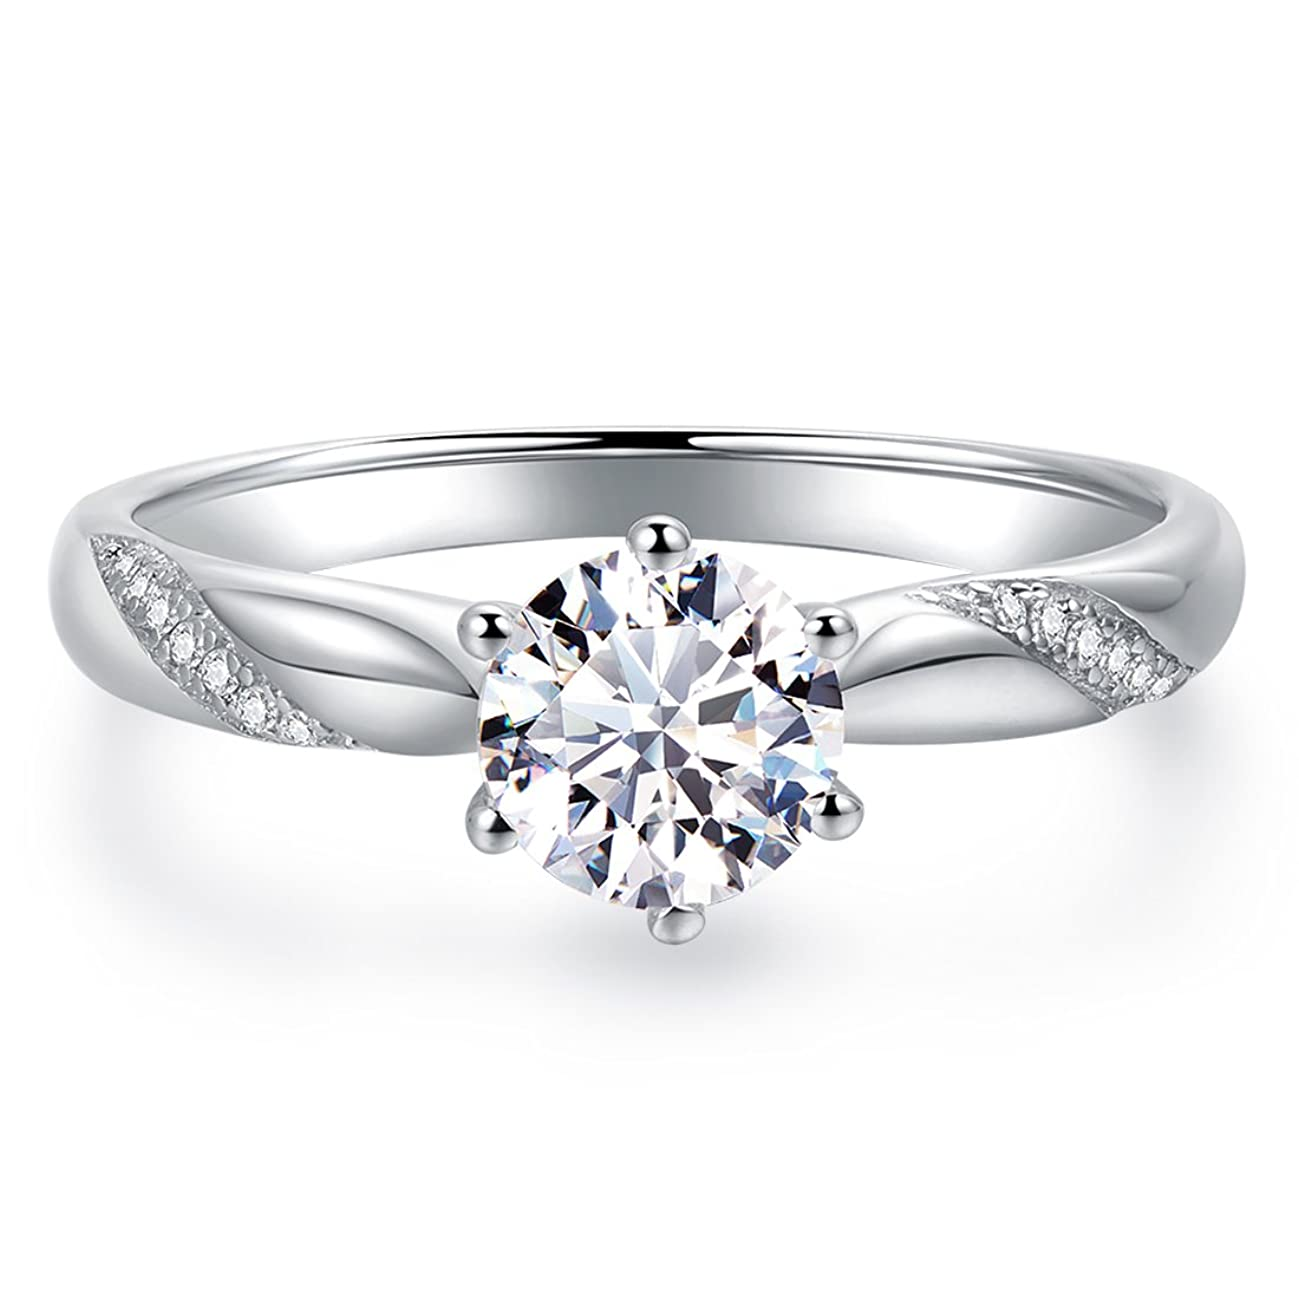 Stunning Flame Solitaire Engagement Ring Cubic Zirconia CZ in White Gold Plated Sterling Silver for Women   Excellent Cut, D Color, FL Clarity & Exquisite Polish